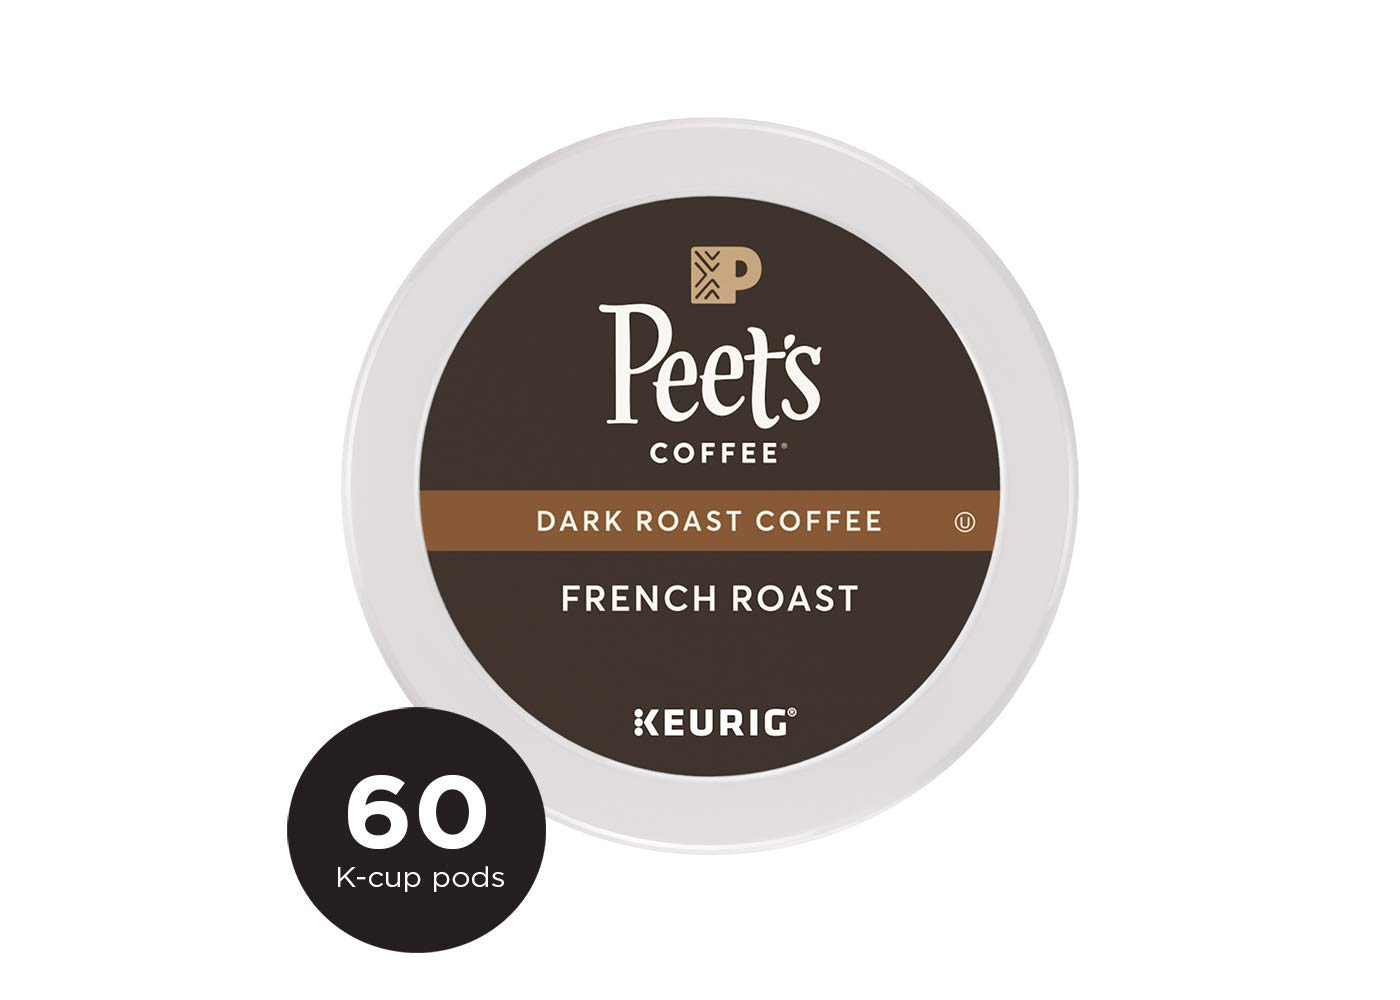 Peet's Coffee French Roast, Dark Roast, 60 Count Single Serve K-Cup Coffee Pods for Keurig Coffee Maker by Peet's Coffee